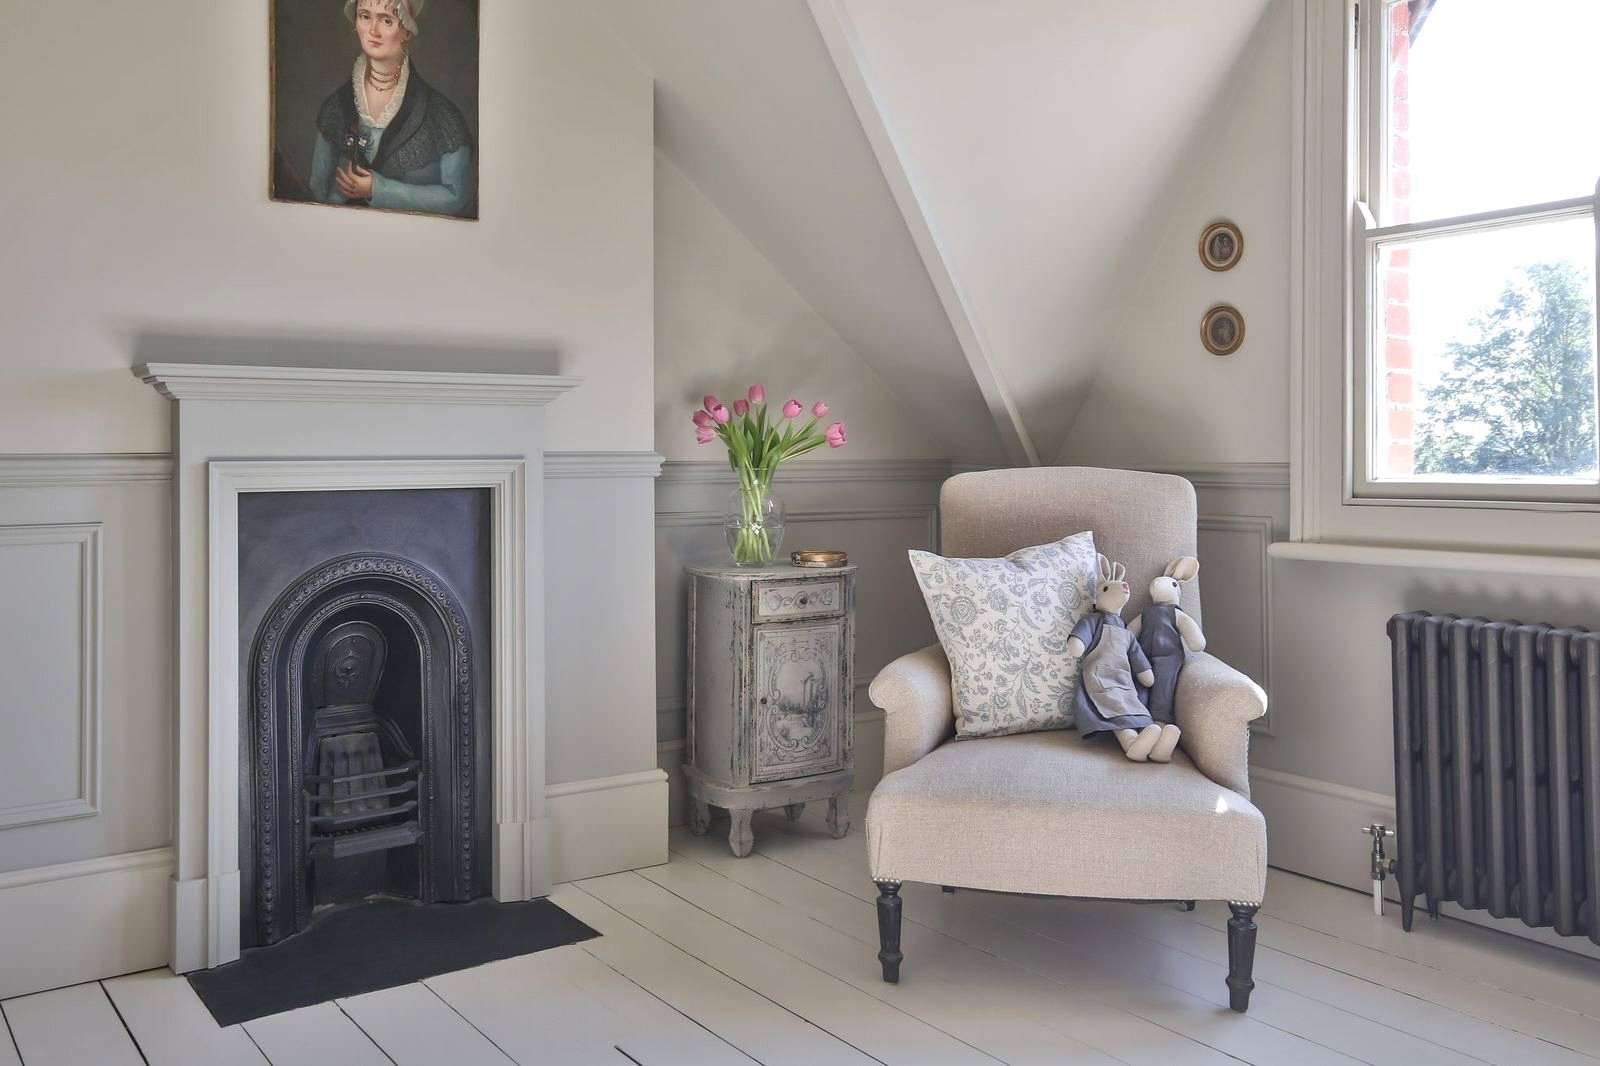 An elegantly-proportioned Victorian house on Woodstock Road in Oxford - Image Gallery 17 - Bedroom